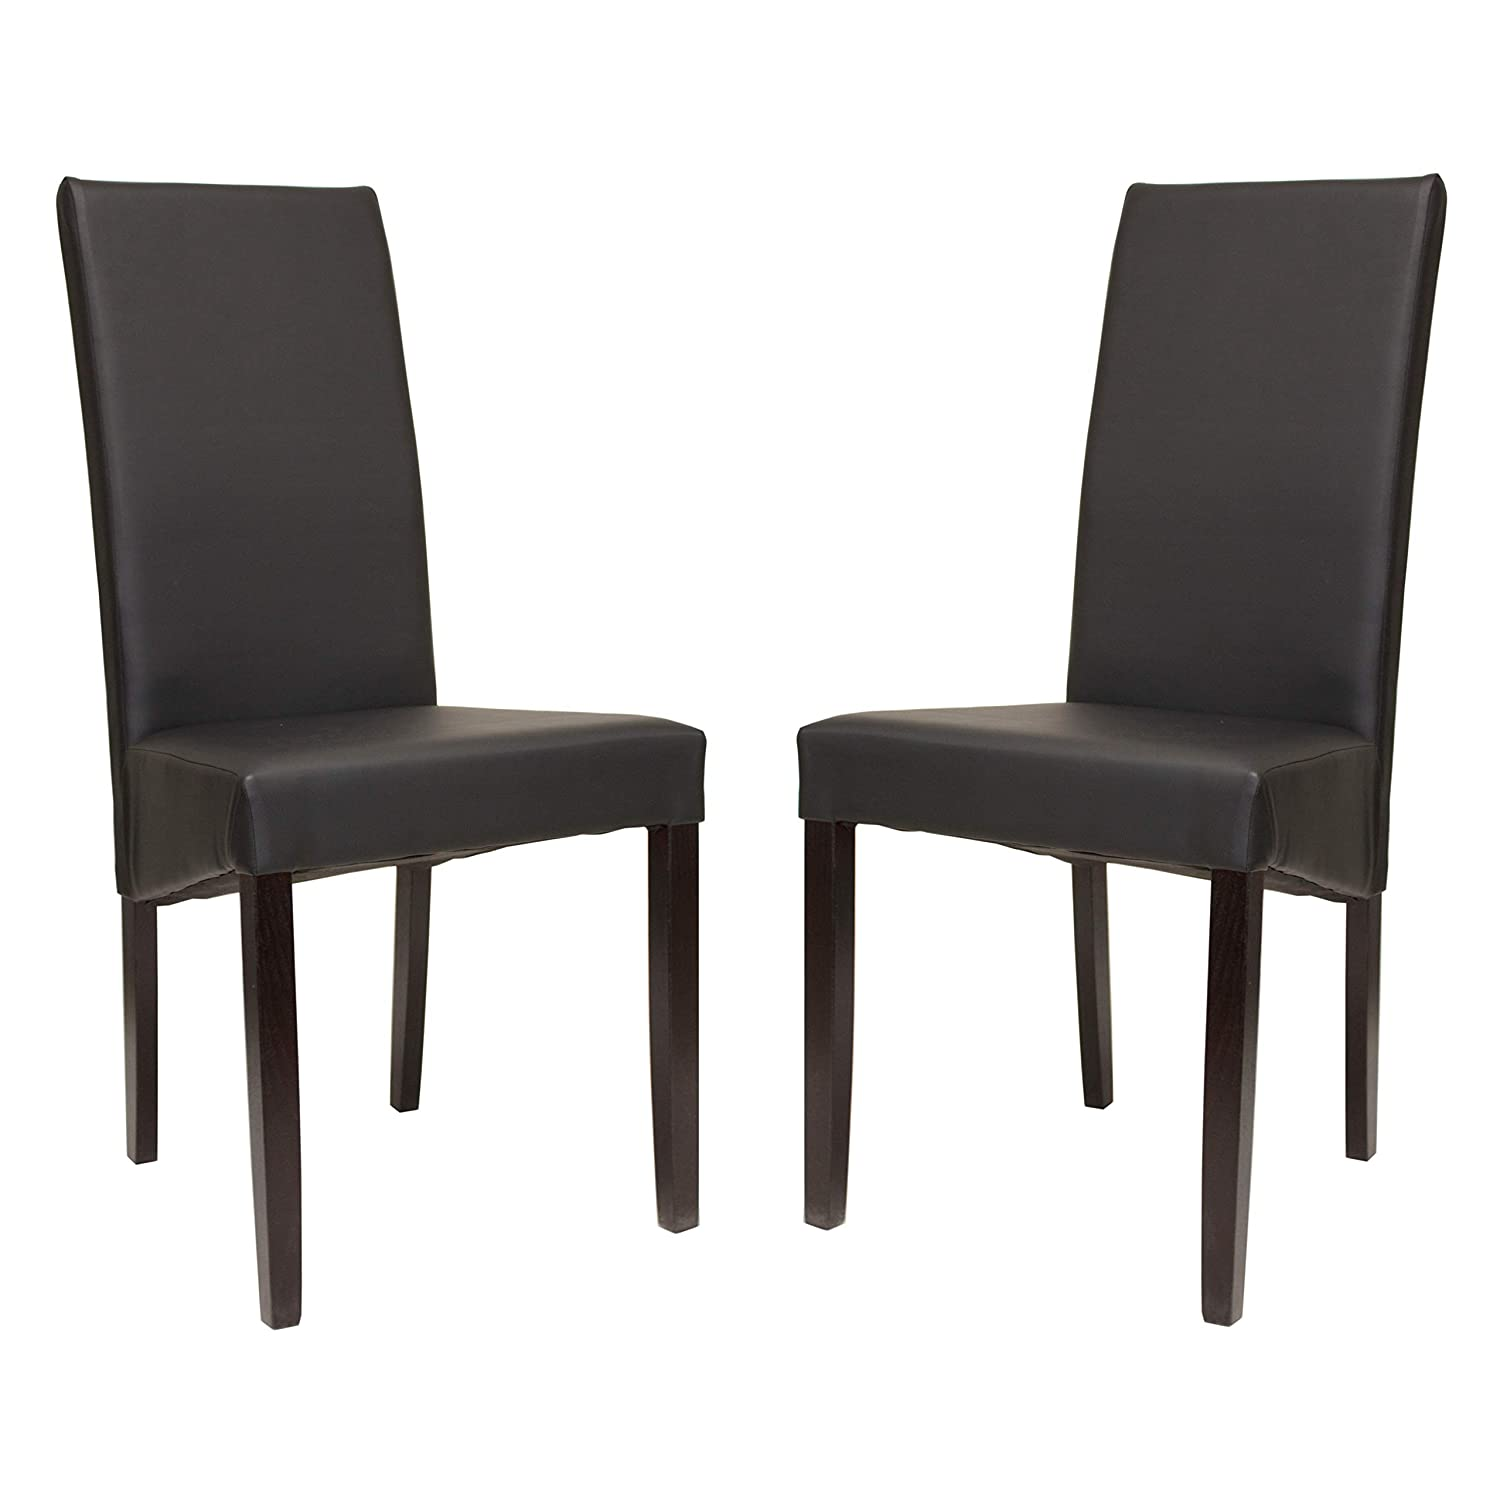 Premium Tobago Grey Dining Chairs Set by Furniture Estate   Modern Faux Leather Side Chairs with Wooden Frame and Legs for Home and Restaurant Use - Set of 2